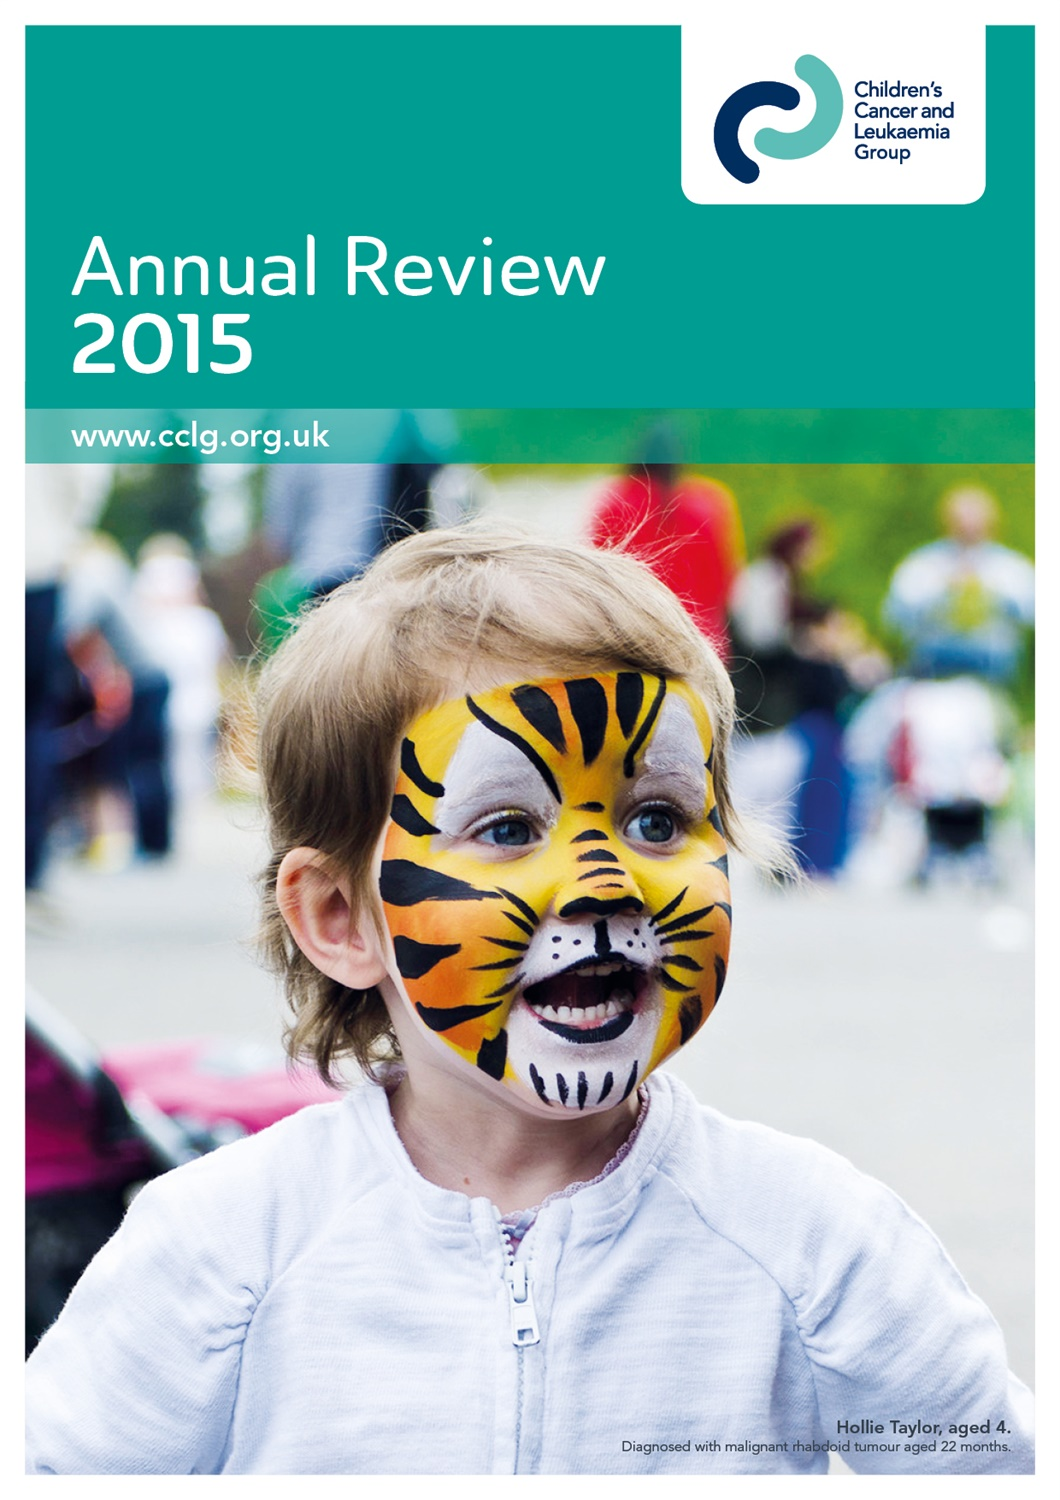 CCLG Annual Review 2015